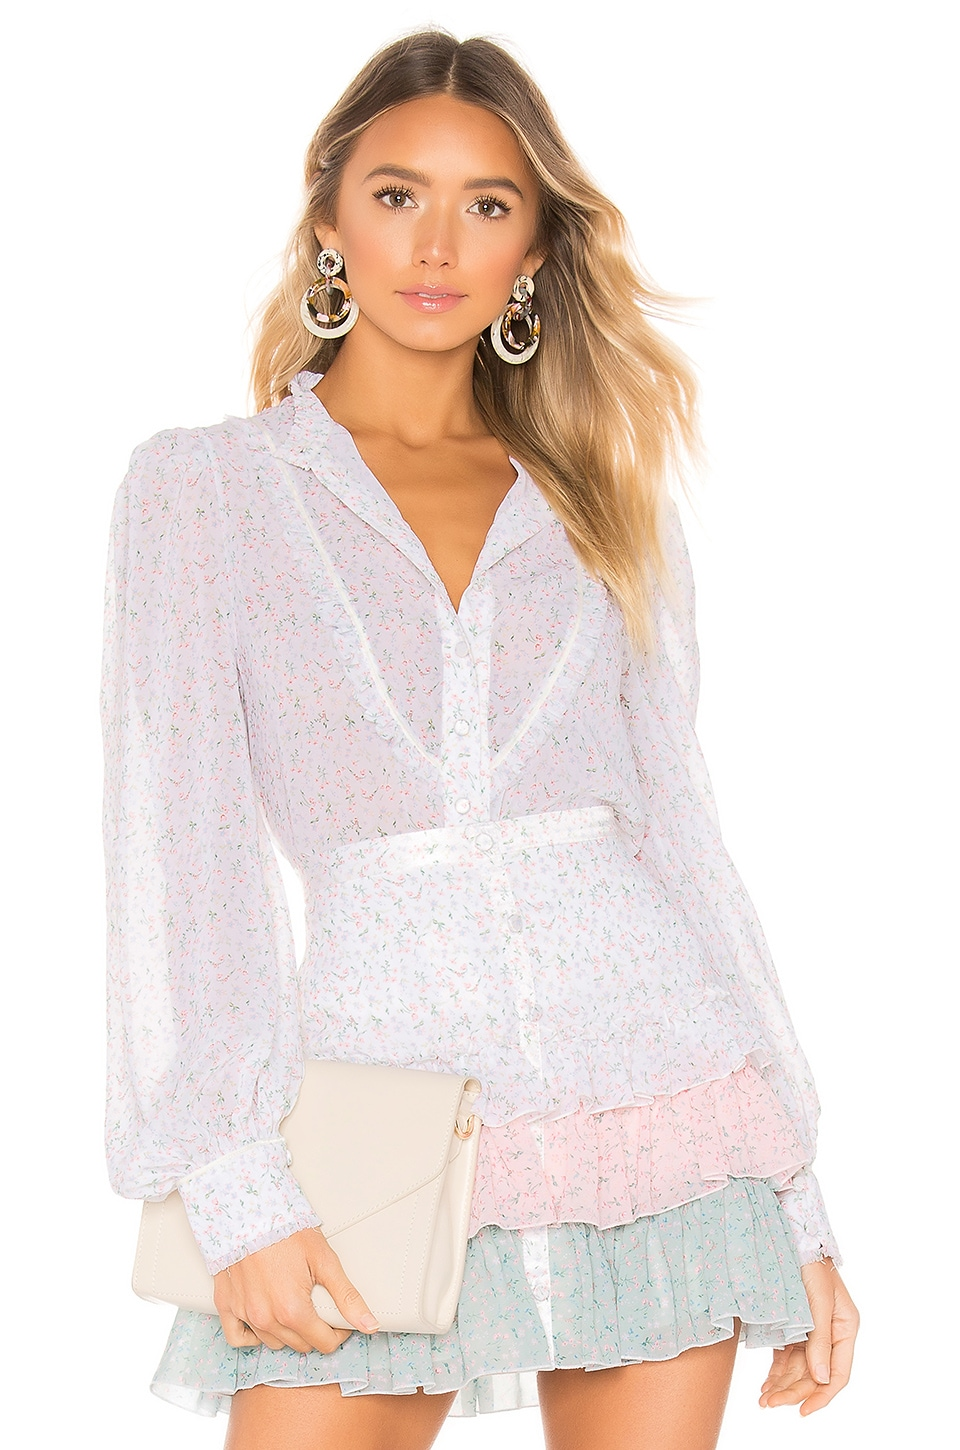 Divine Heritage Button Up Blouse in White Light